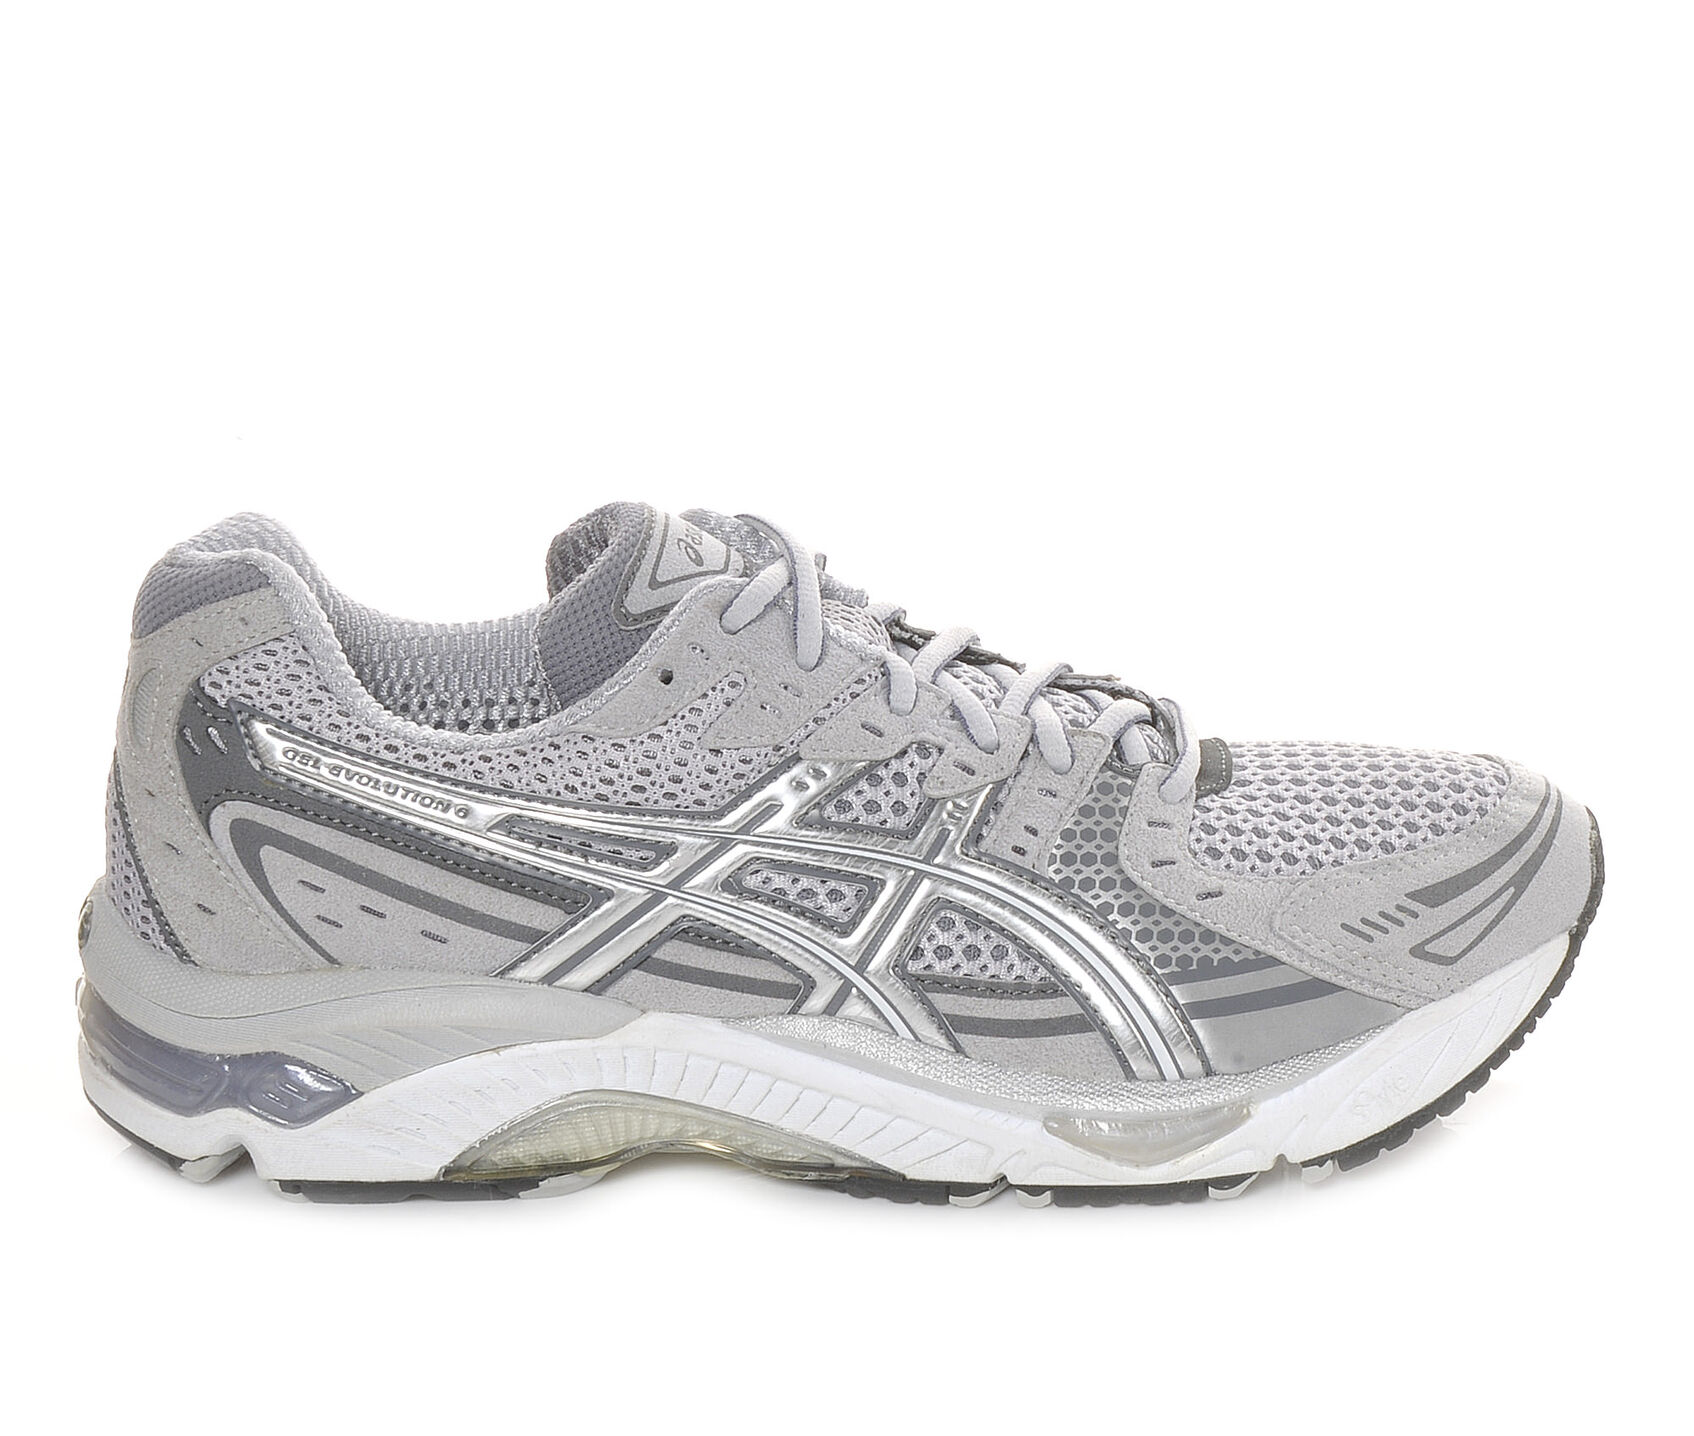 competitive price a990c 80713 Men s ASICS Gel Evolution 6 Running Shoes   Shoe Carnival